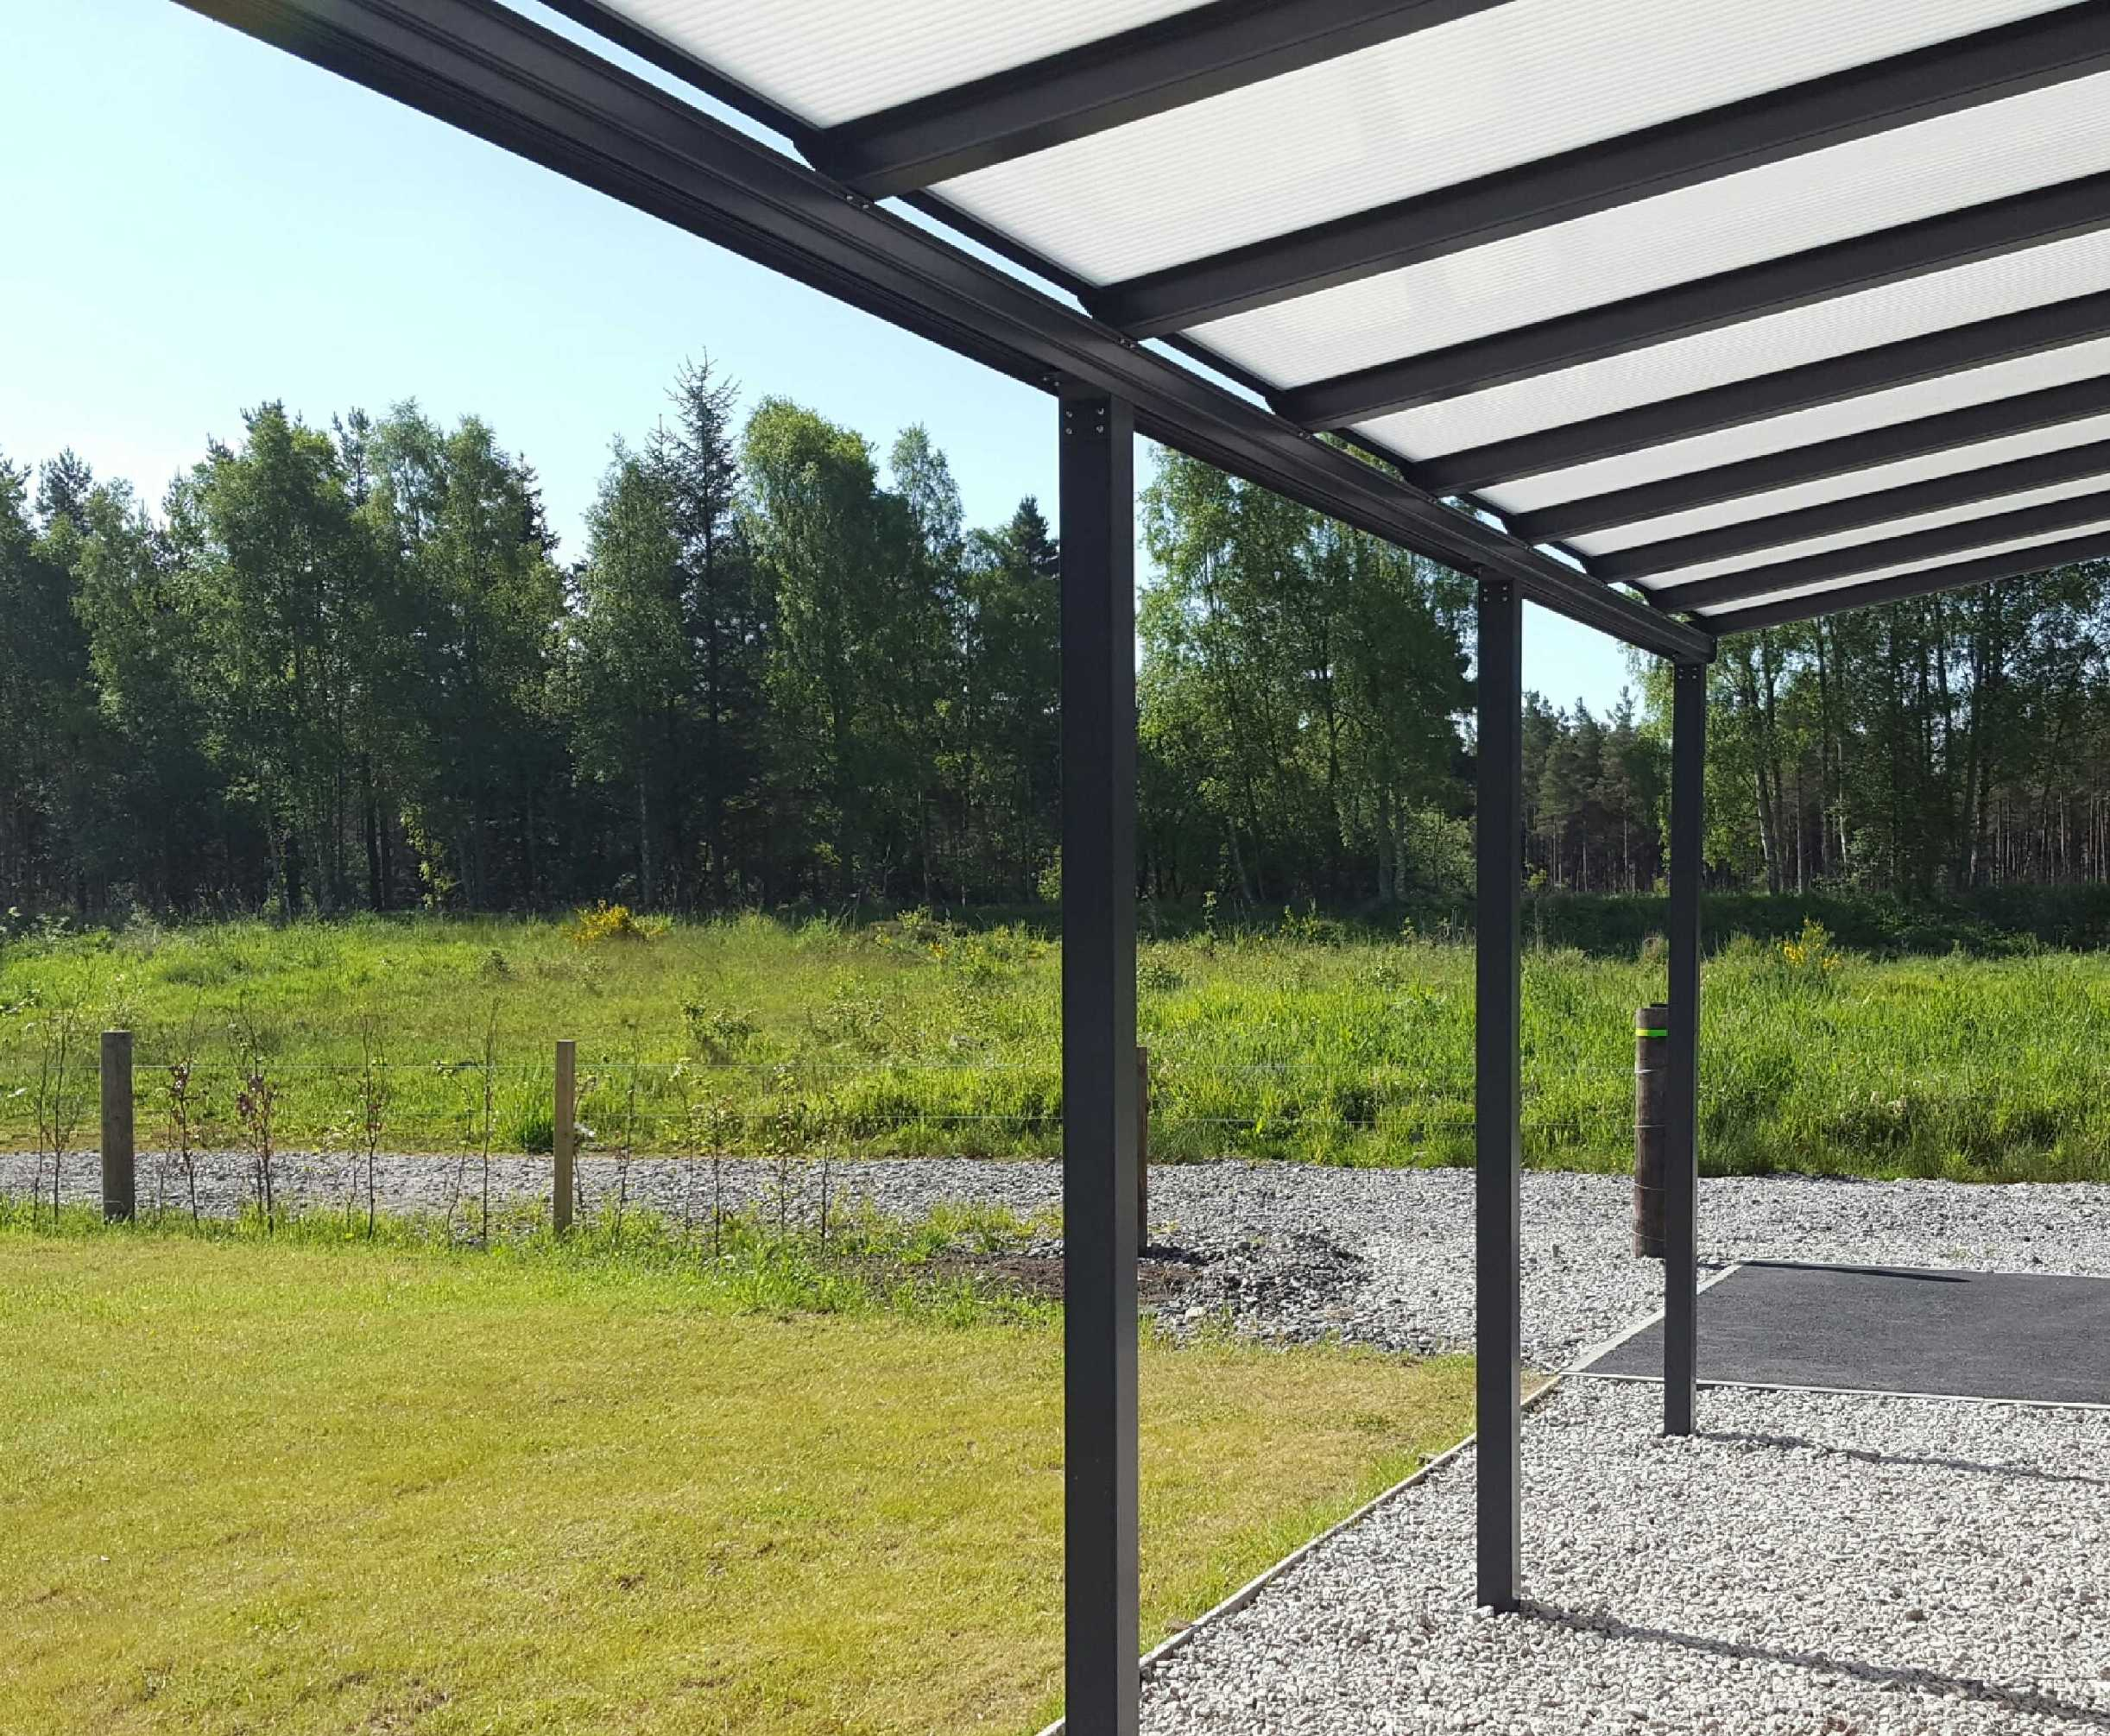 Omega Smart Lean-To Canopy, Anthracite Grey, 16mm Polycarbonate Glazing - 8.4m (W) x 3.0m (P), (4) Supporting Posts